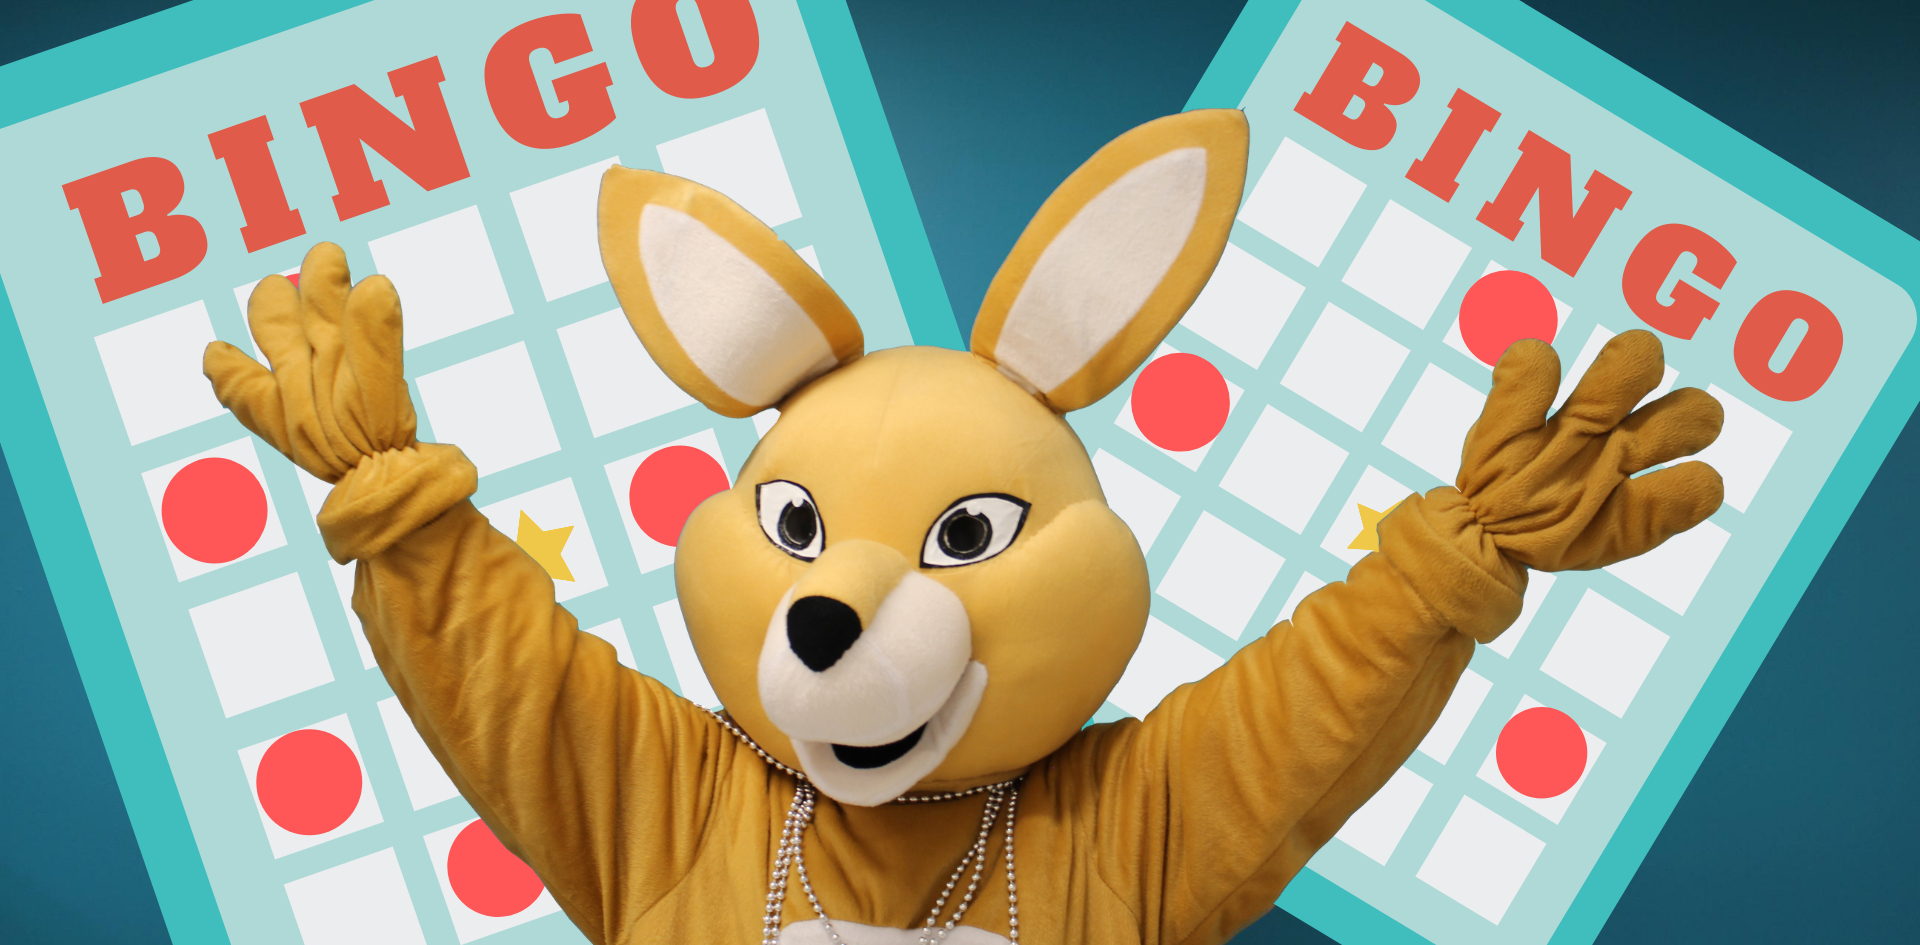 AHSSIE the mascot with arms up in front of bingo card.